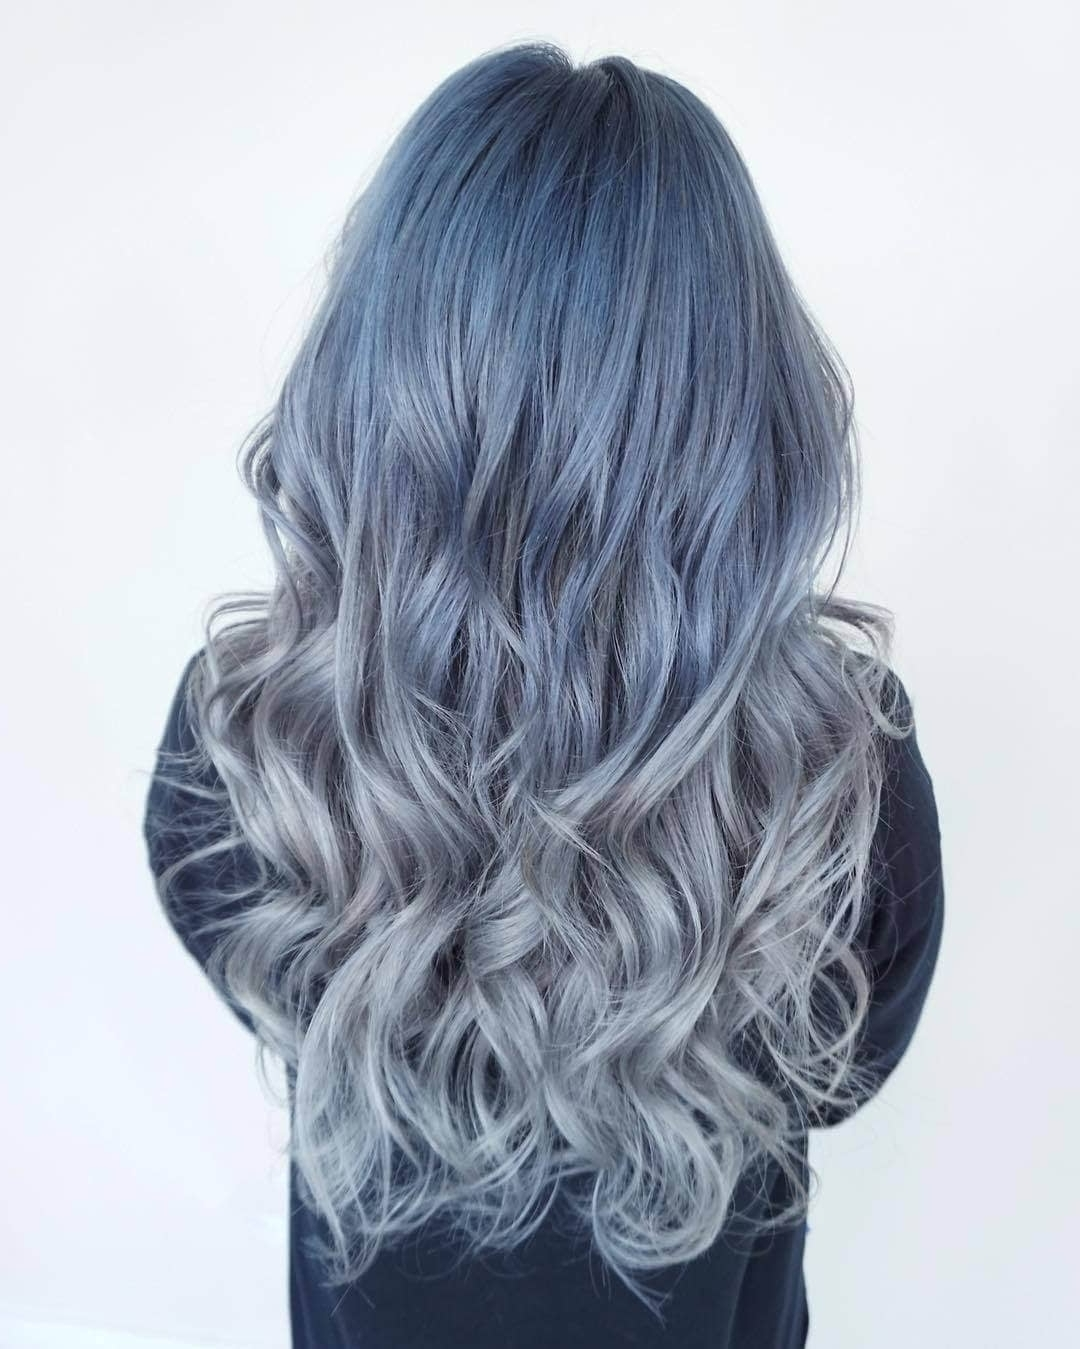 Well Liked Grayscale Ombre Blonde Hairstyles For 50 Fun Blue Hair Ideas To Become More Adventurous In (View 14 of 20)